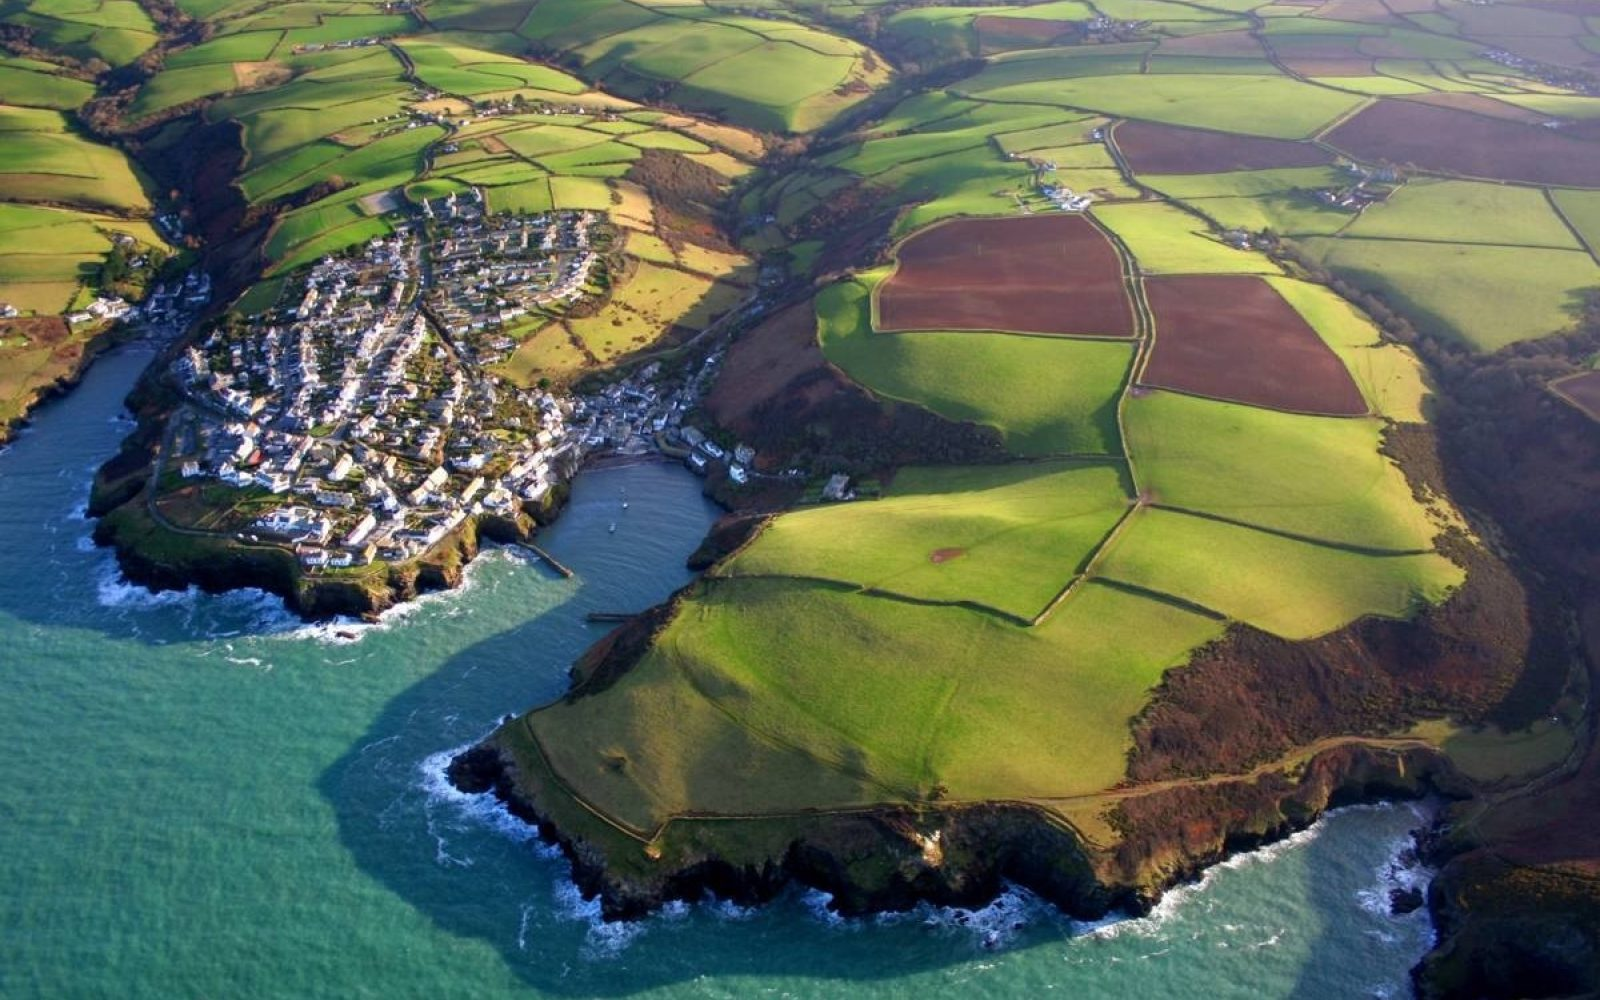 The LEM operates in Cornwall, one of the most constrained areas of the UK. Image: Centrica.